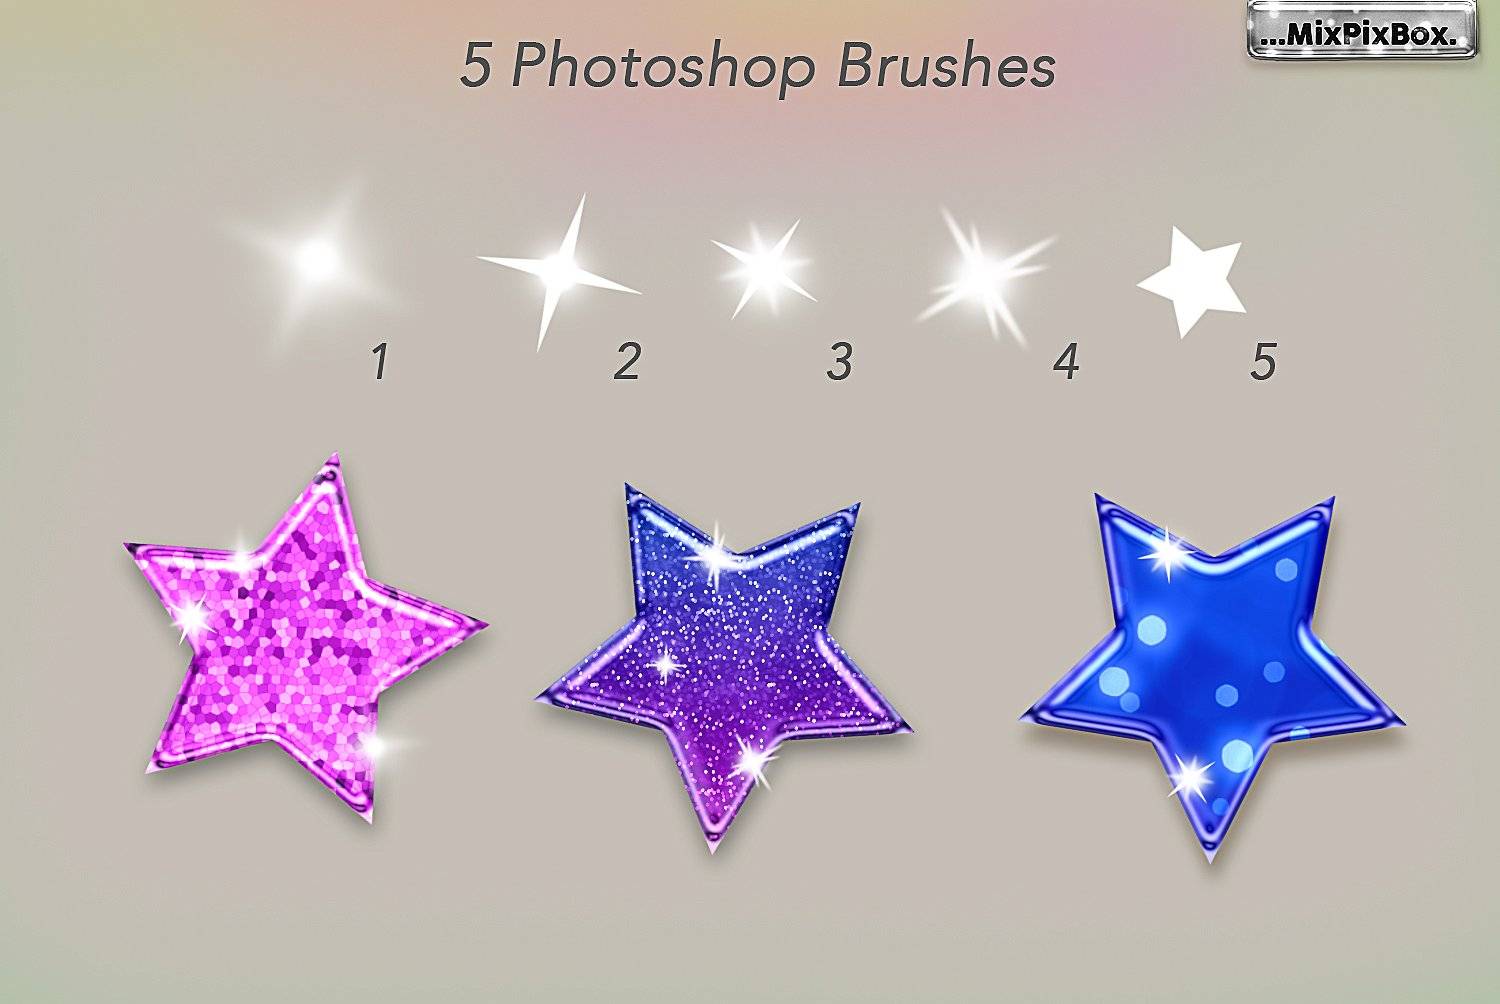 Sparkling Glossy Layer Styles for PS